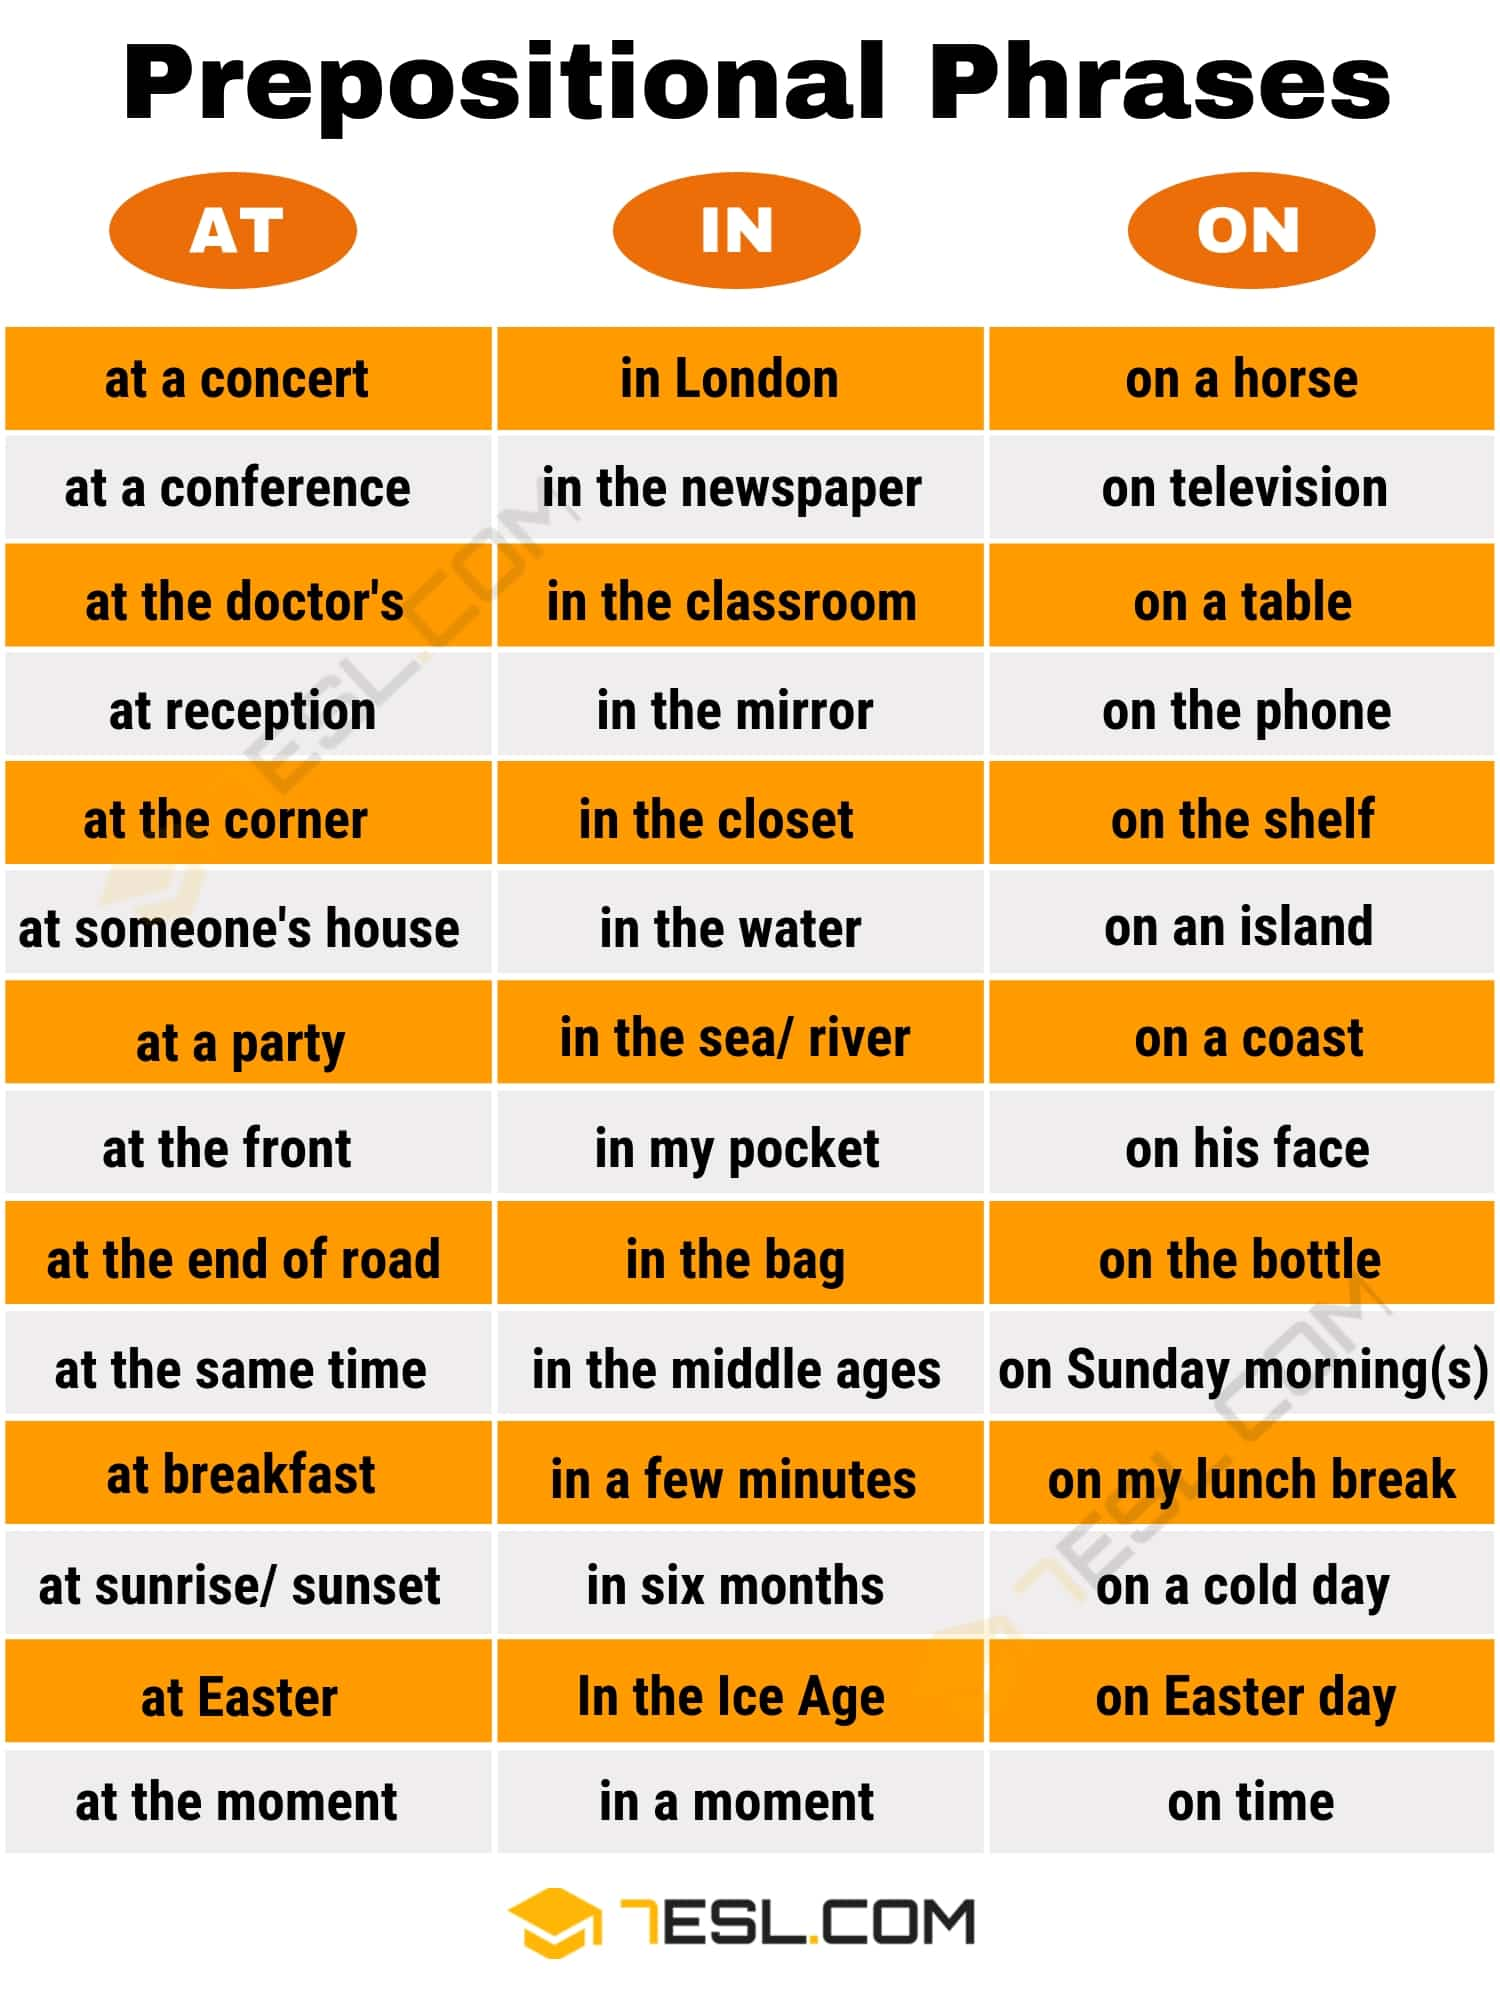 Prepositional Phrase Examples | Image